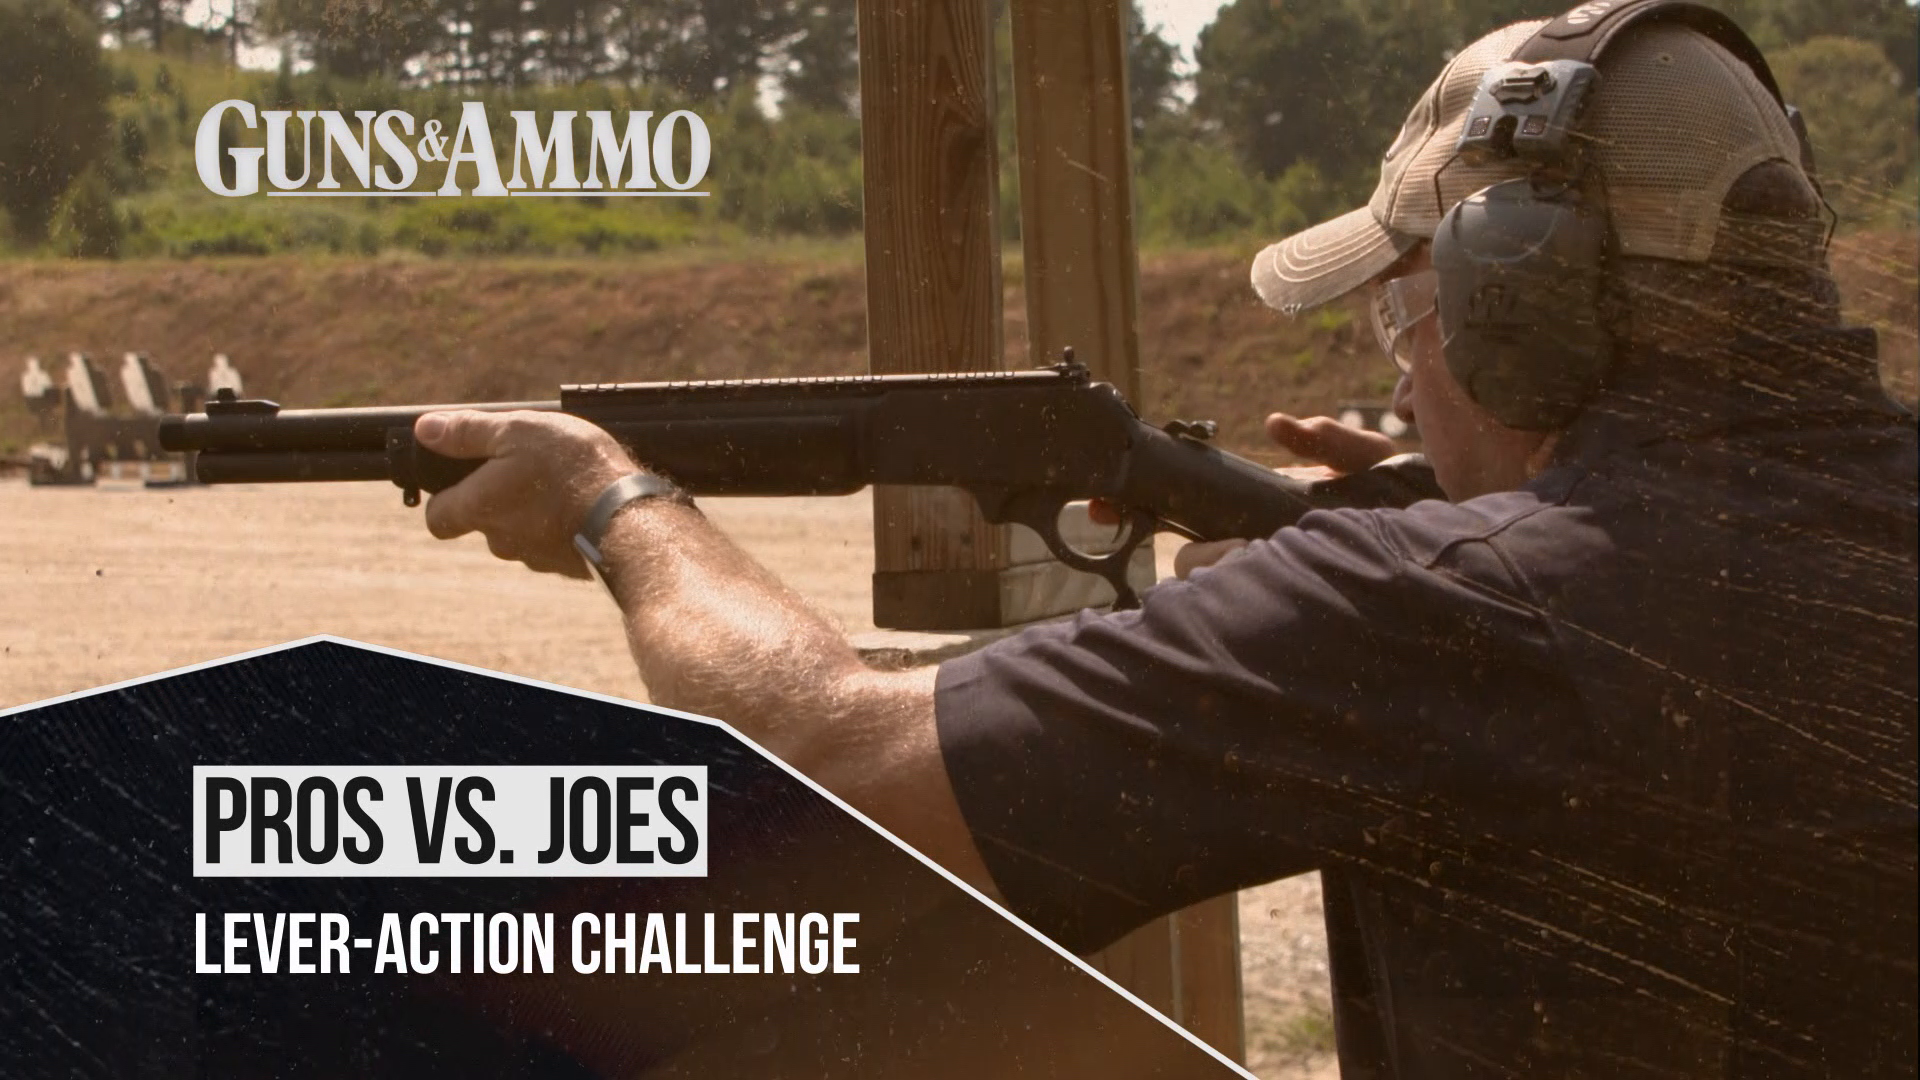 Lever-Action Challenge